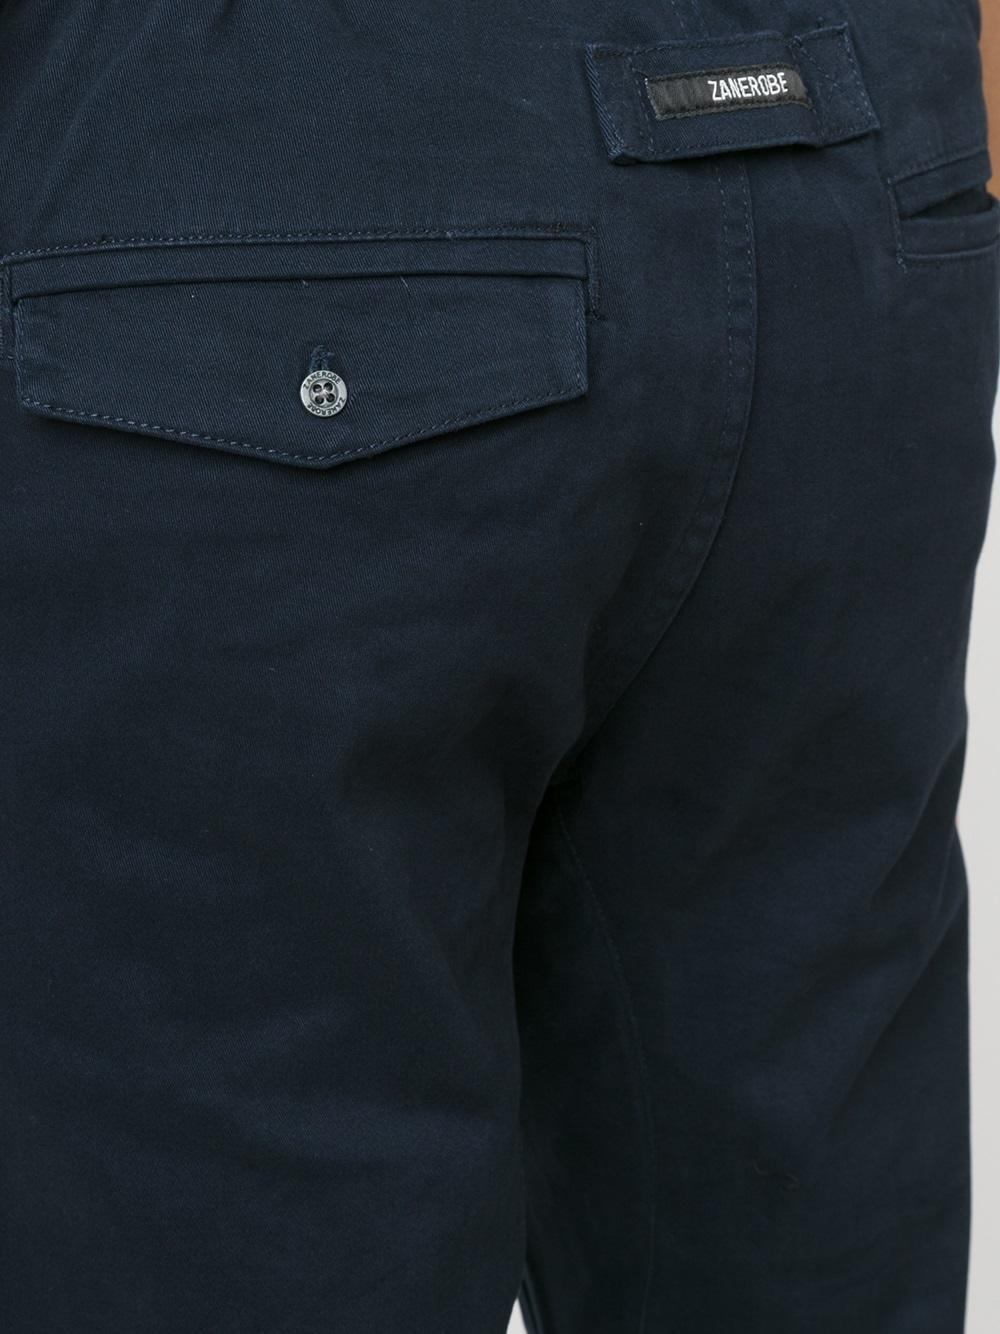 Zanerobe Cotton 'sureshot' Jogging Trousers in Blue for Men